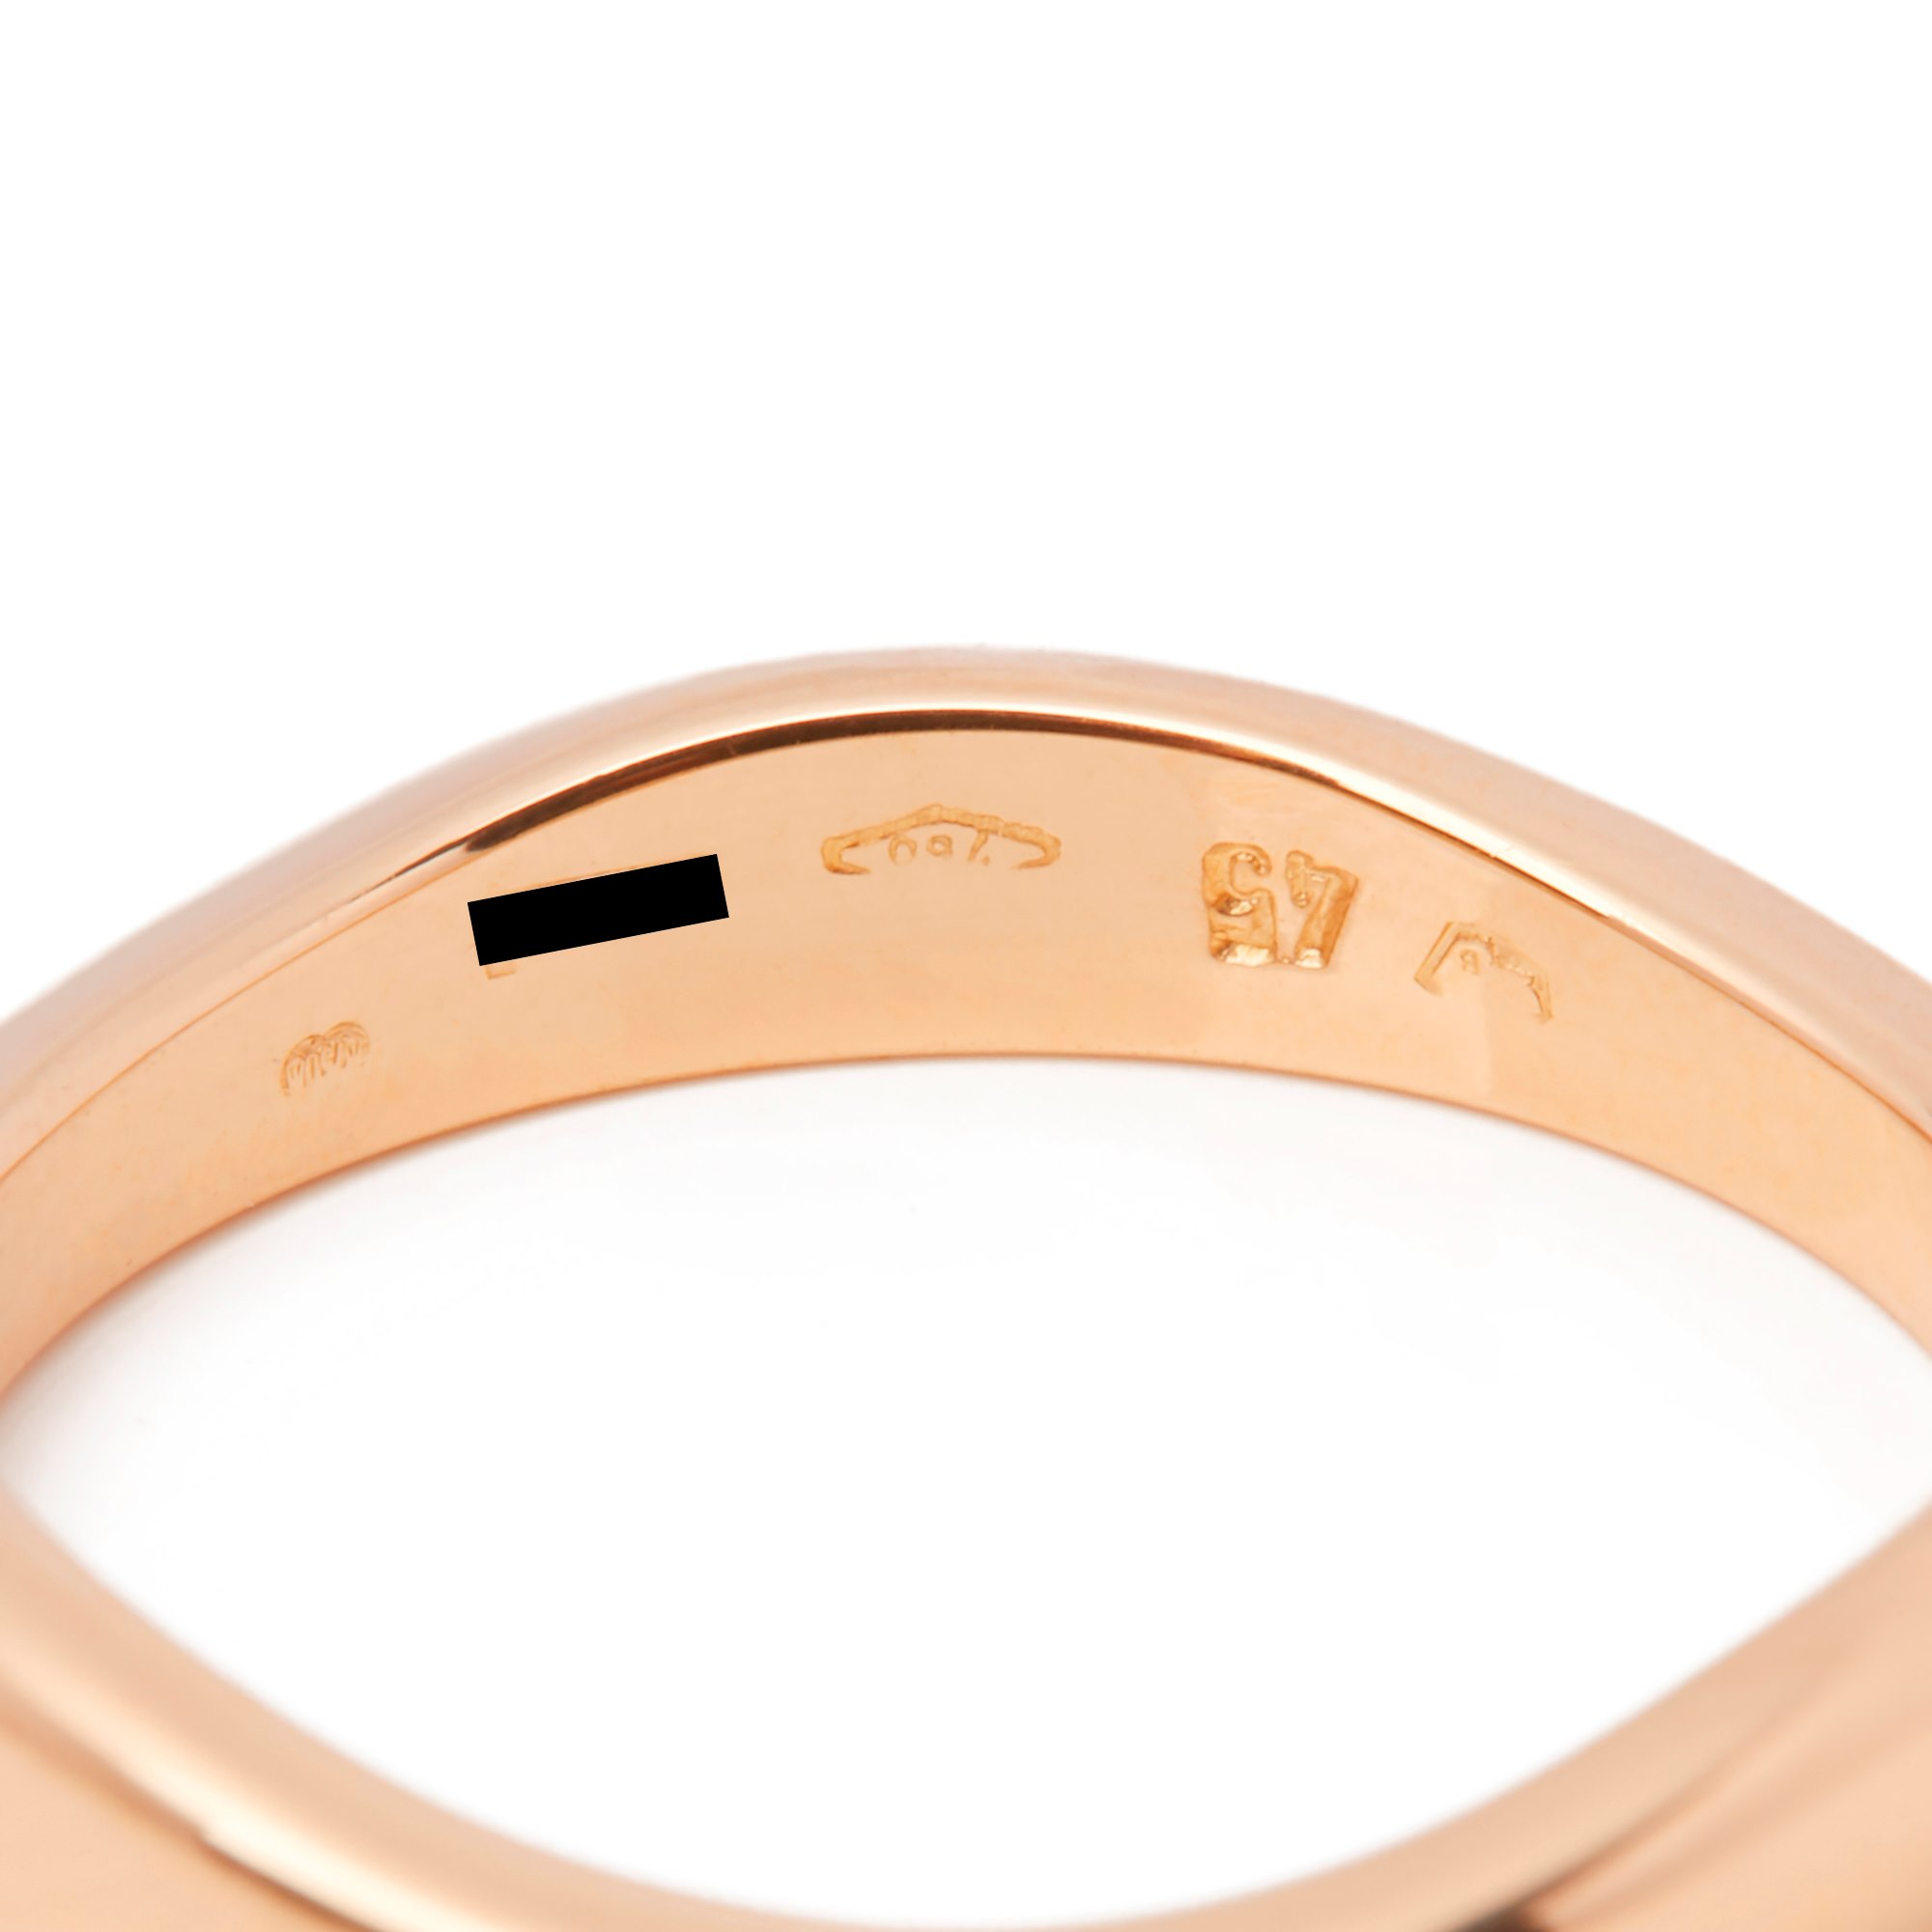 Cartier 18k Yellow, White & Rose Gold Stackable Rings